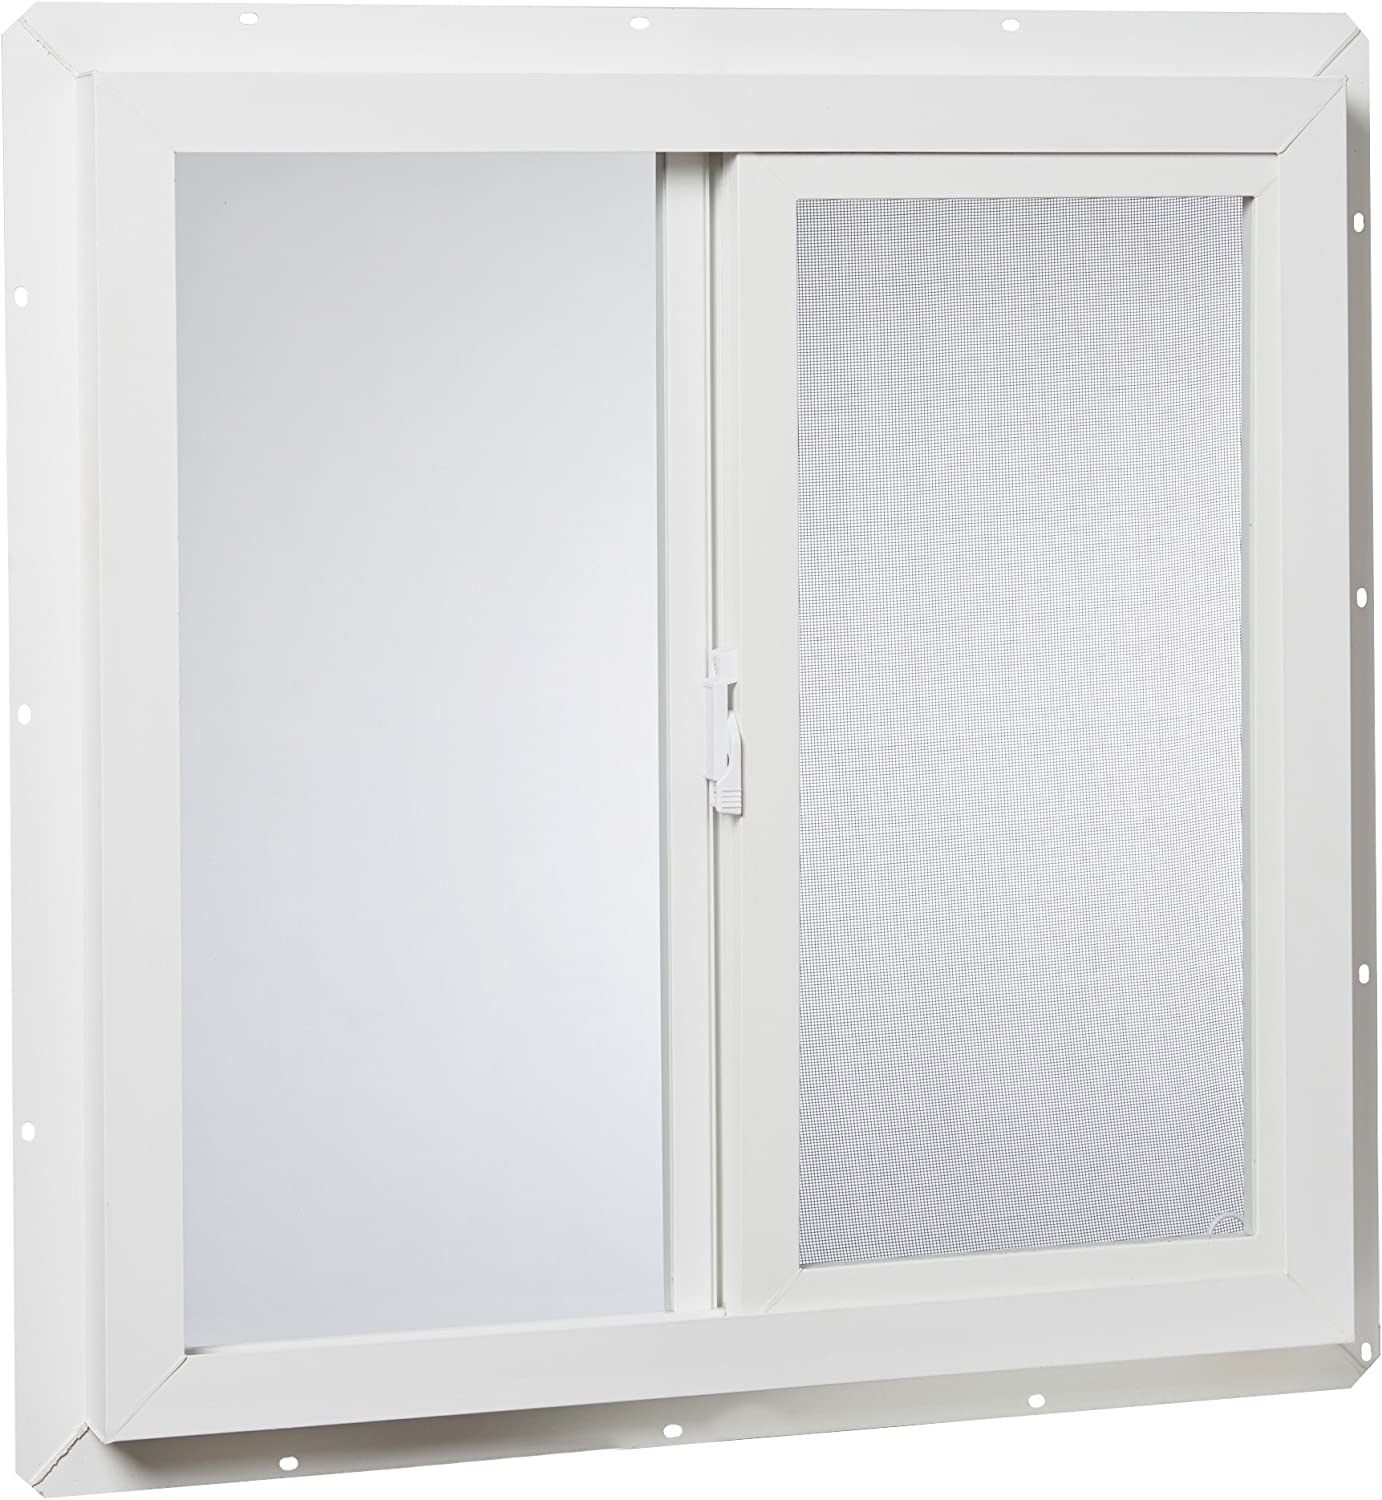 "Park Ridge Products VUSI2424PR Park Ridge Slider x 24 in. Utility Insulated Sliding Vinyl Window – White, 24"" X 24"